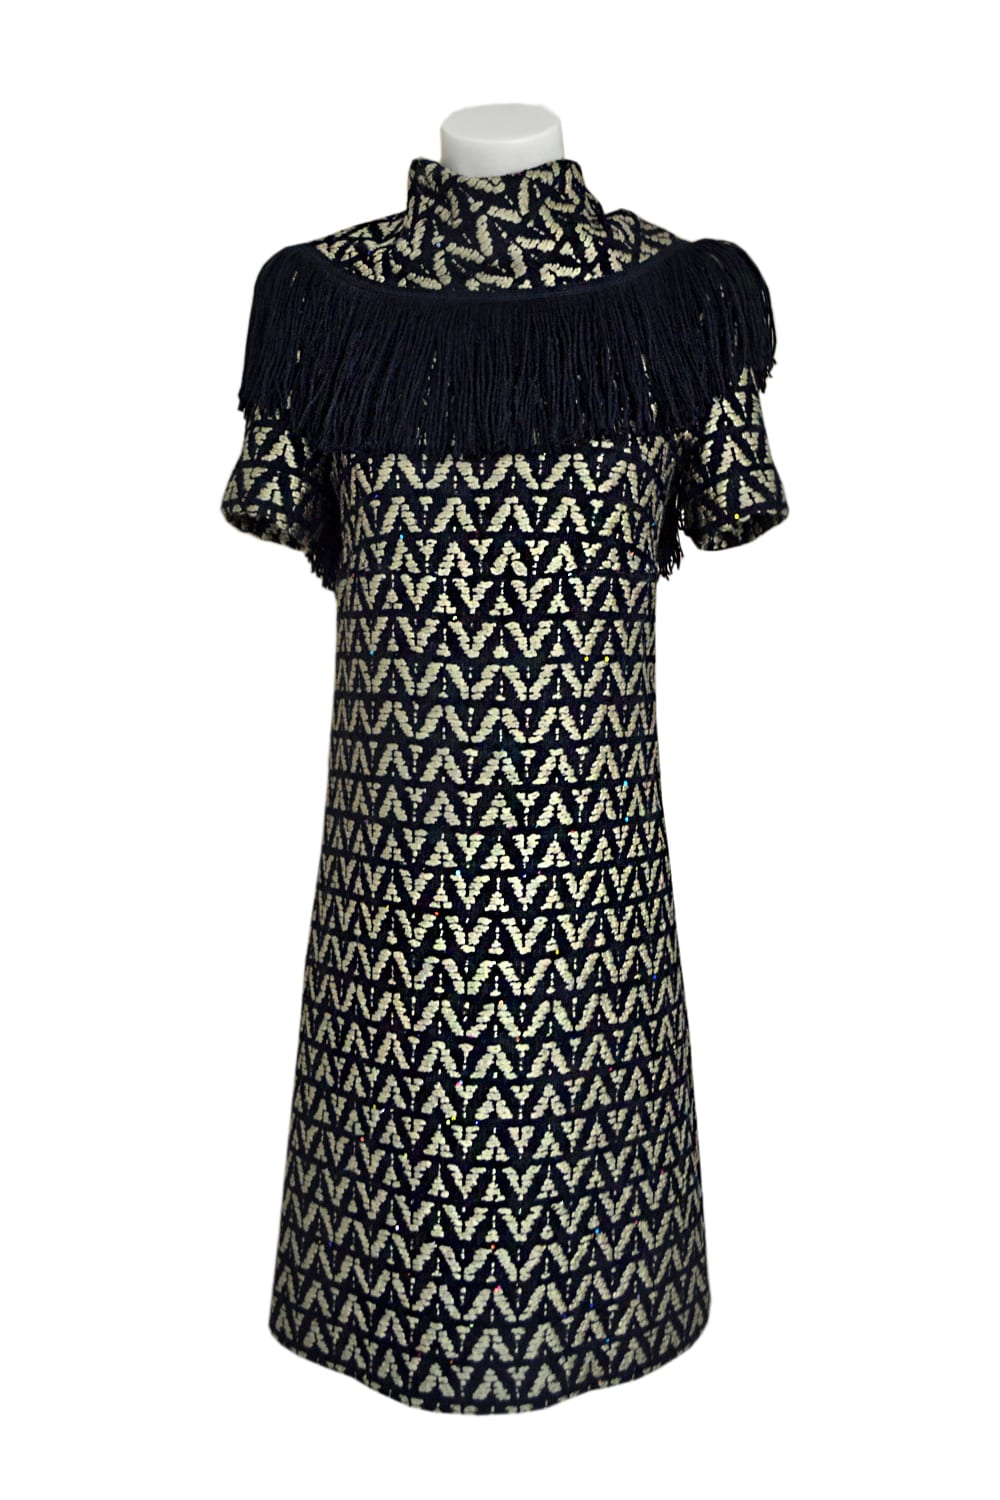 Short-sleeved dress with high neck. Black fringed neckline front and back. Beige and black tweed with geometric shapes.